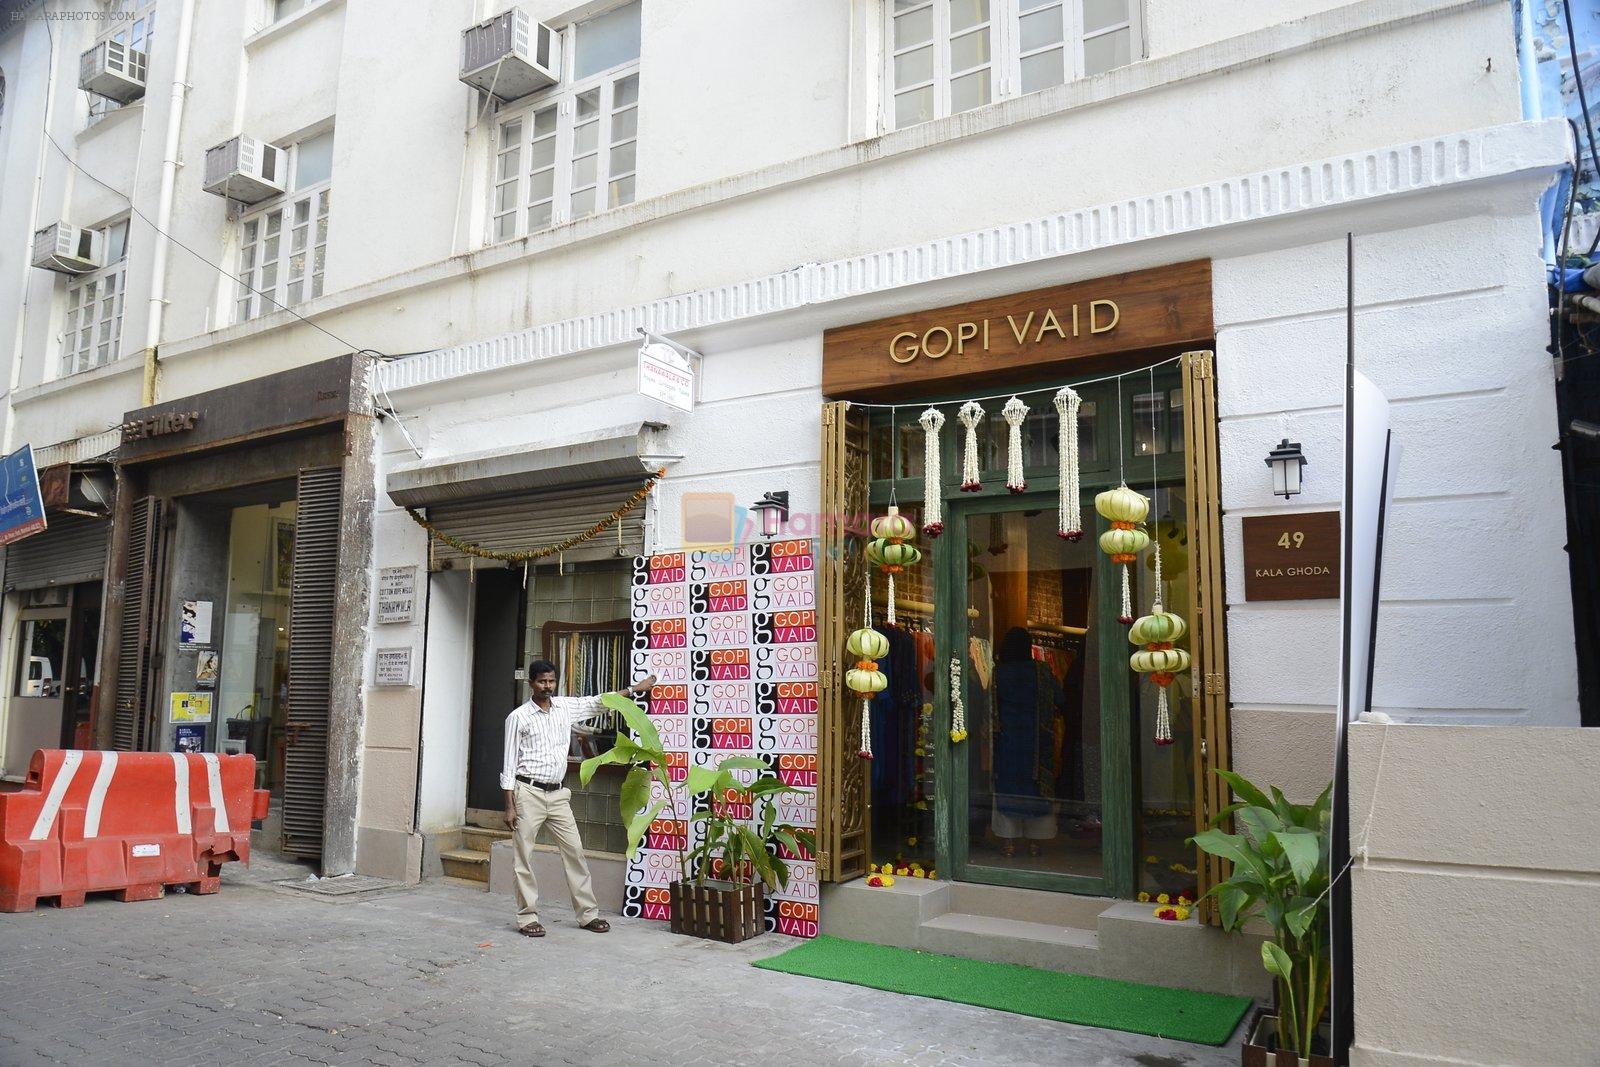 innaugurates Gopi Vaid's new store on 15th Oct 2016